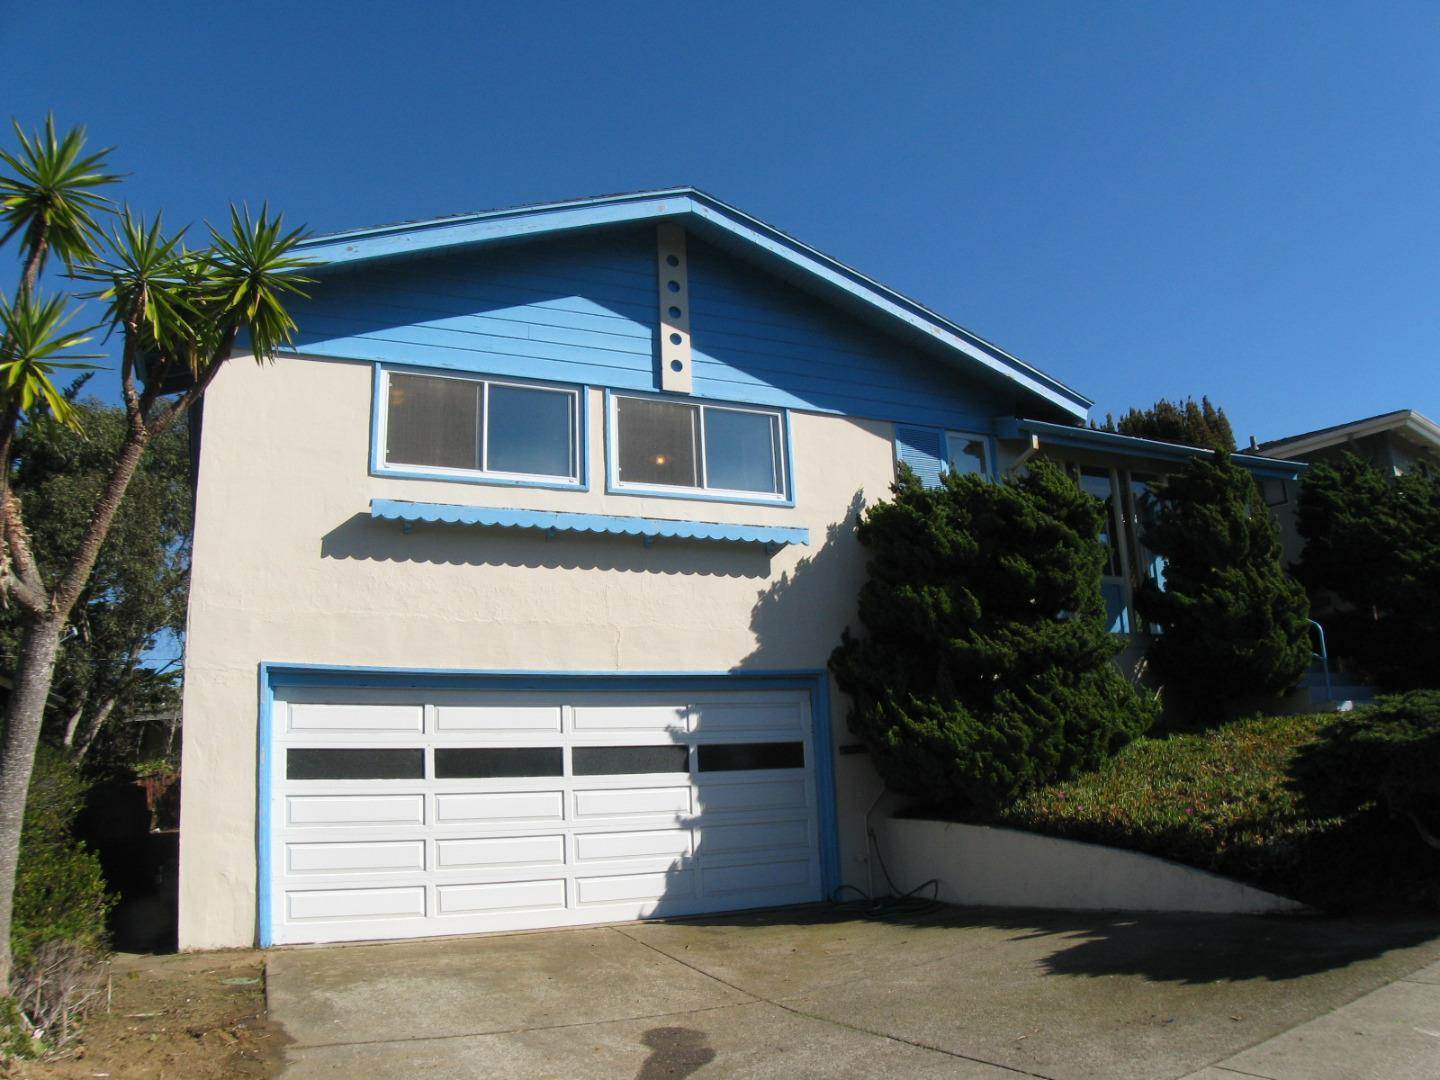 140 Berenda Dr, South San Francisco, CA 94080